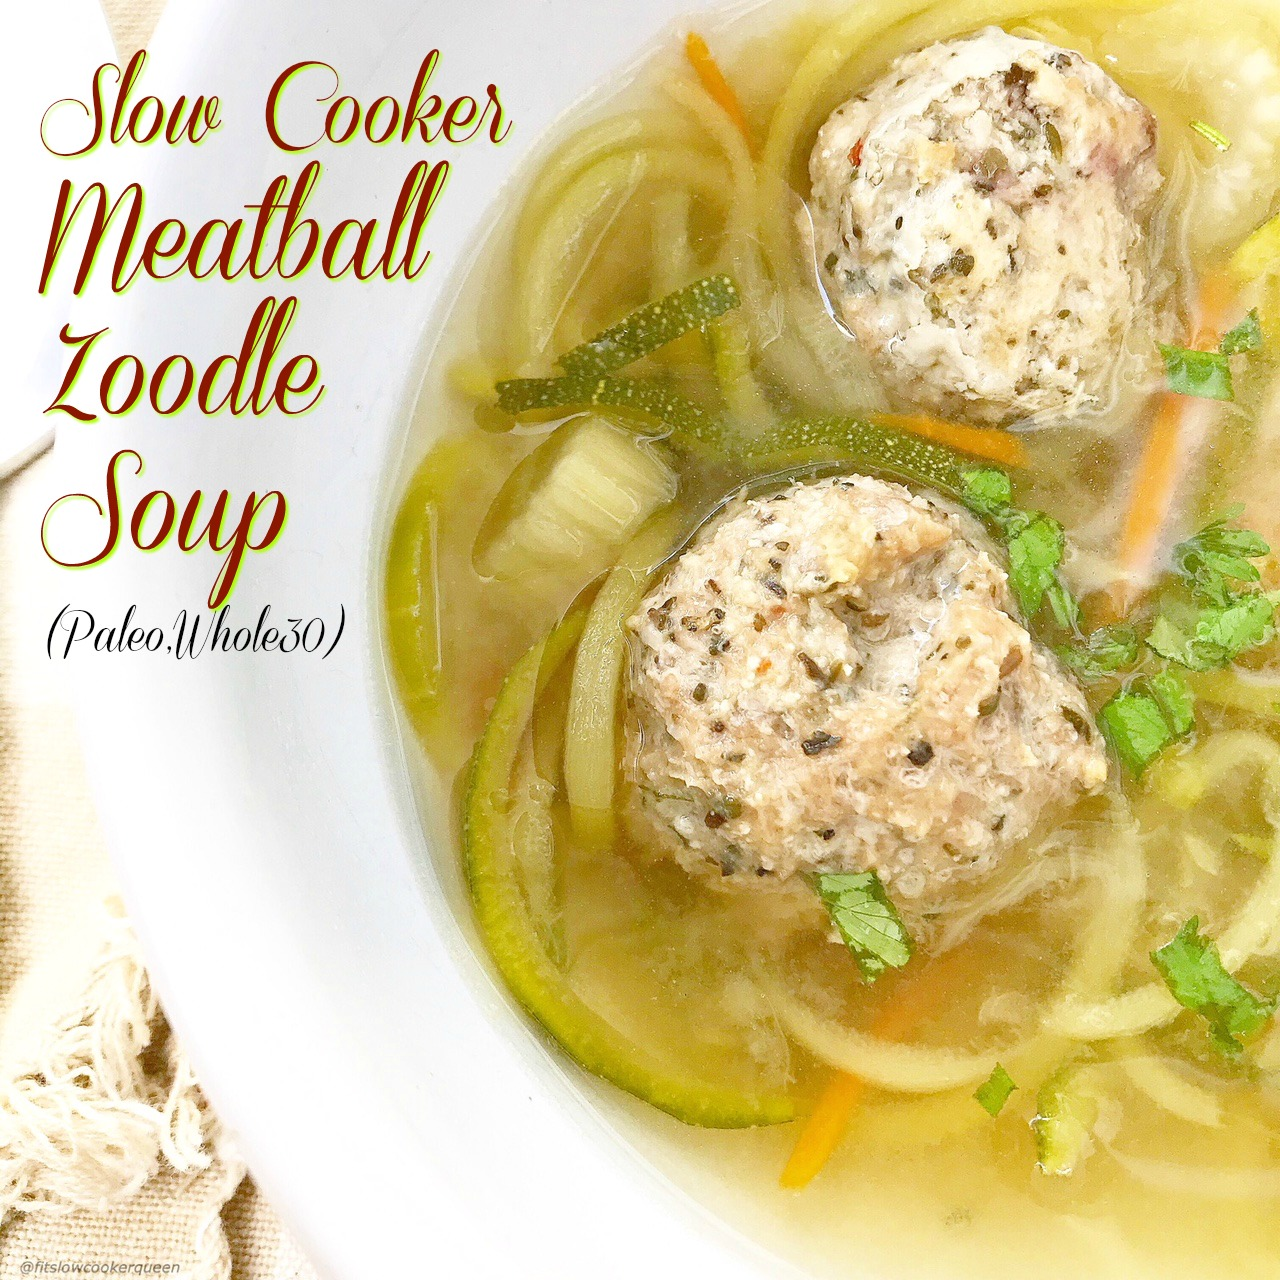 Zoodle soup! Slow cookers are meant to be used year-round. Zucchini zoodles and pre-made meatballslighten up this soup that can be eaten year-round.